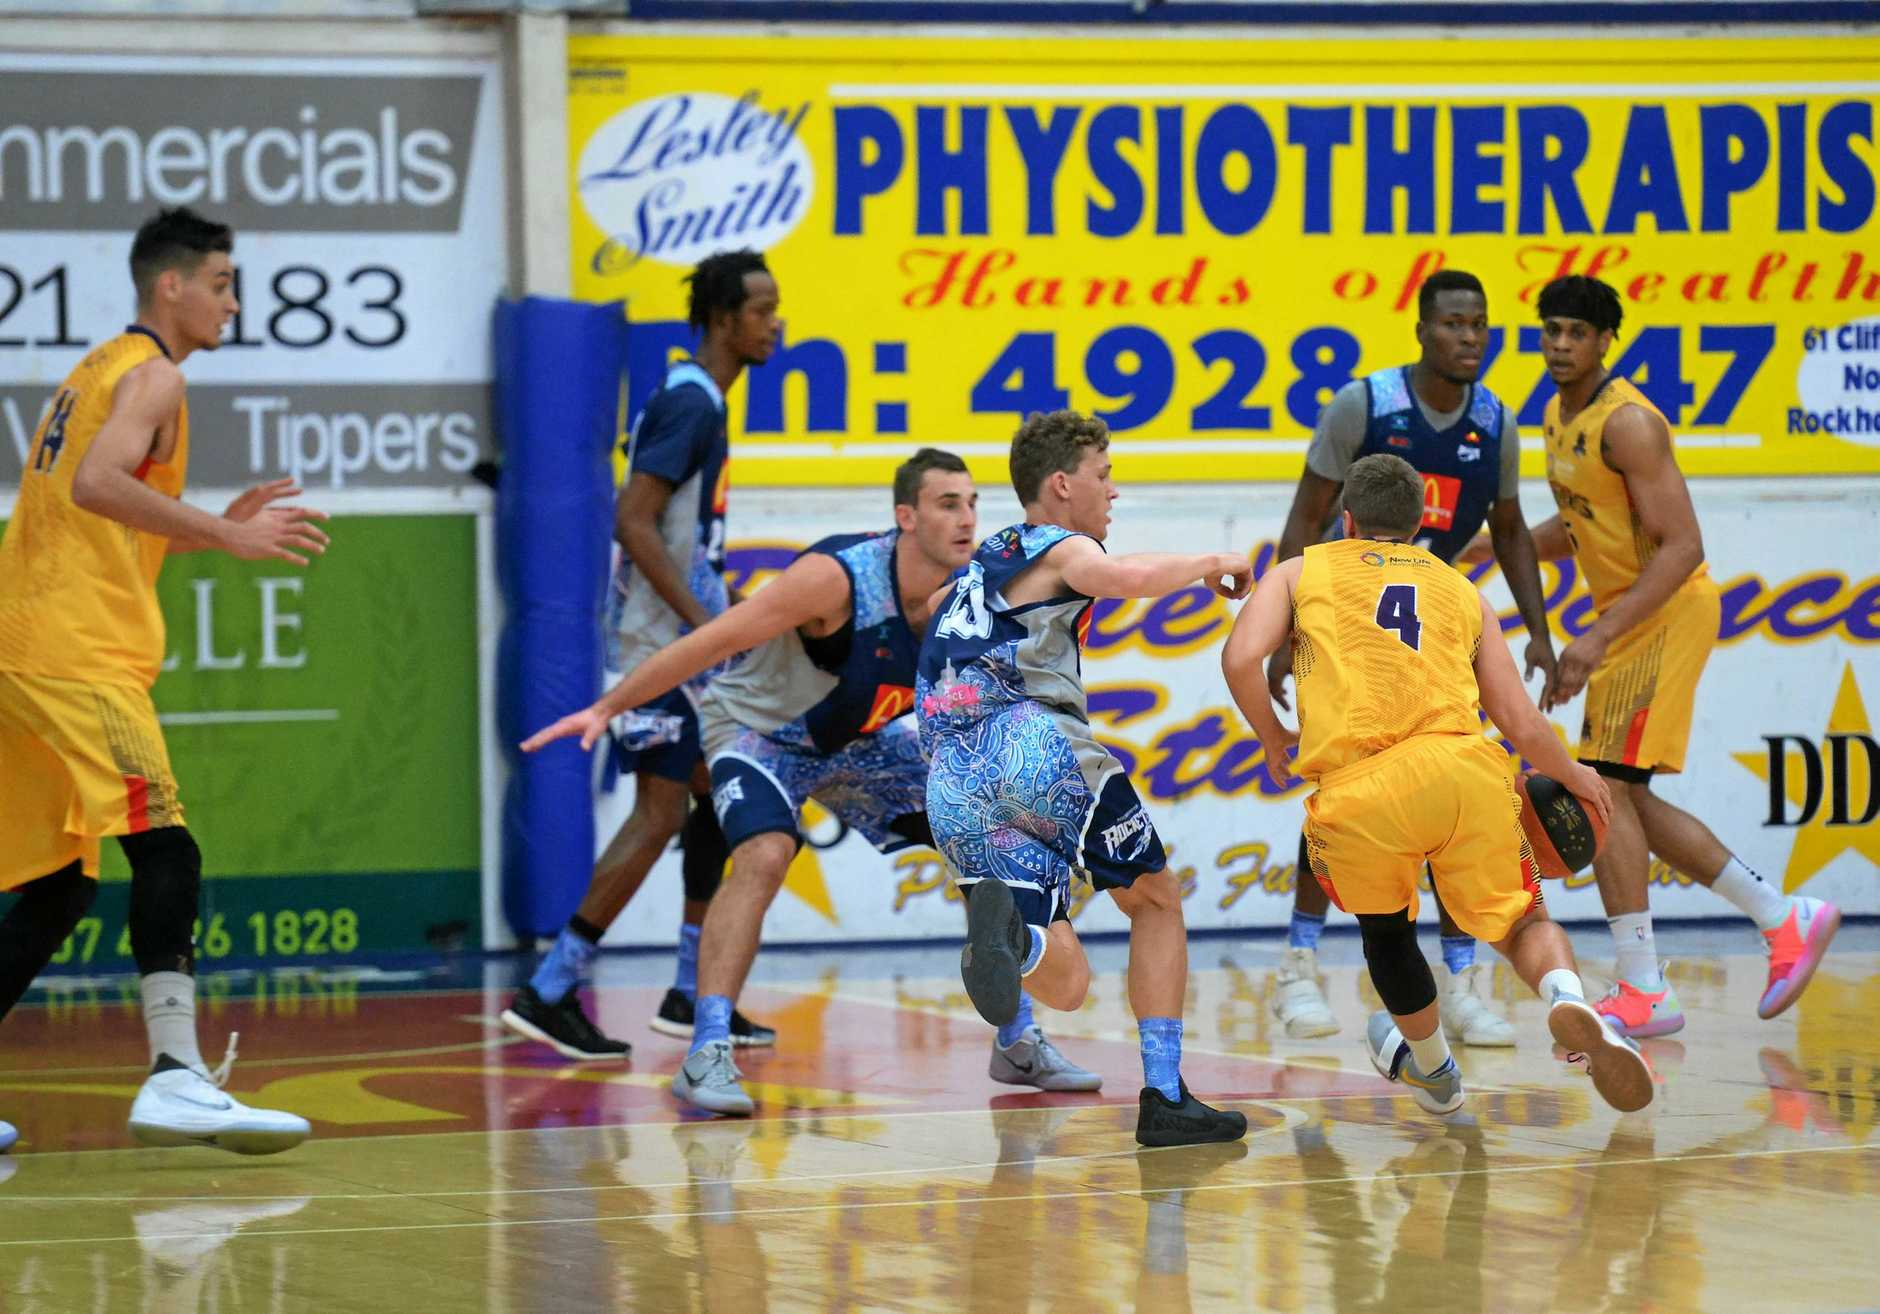 The Rockhampton Rockets toppled the South West Metro Pirates on Saturday night.